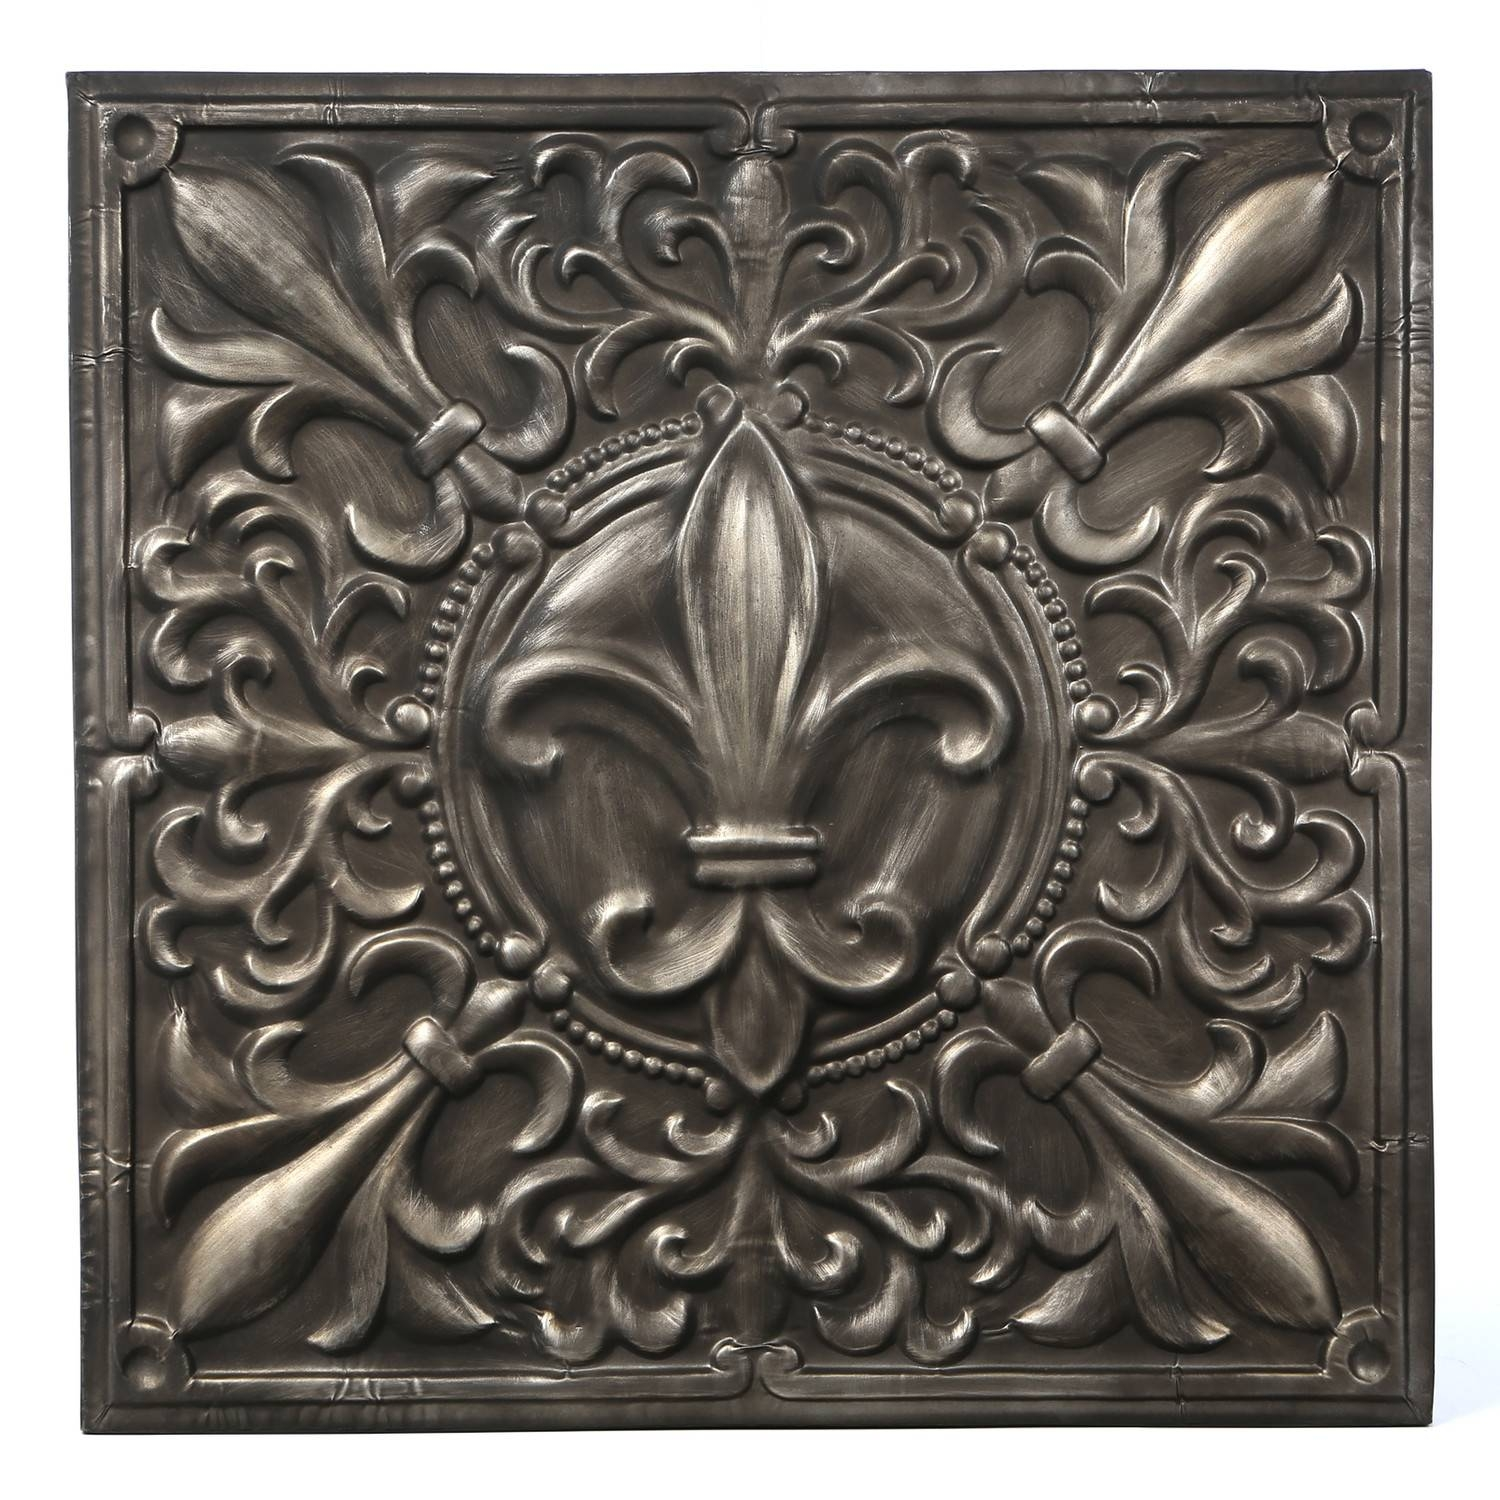 Fleur De Lis Home Decor Wall Art ~ Ideas of metal fleur de lis wall art